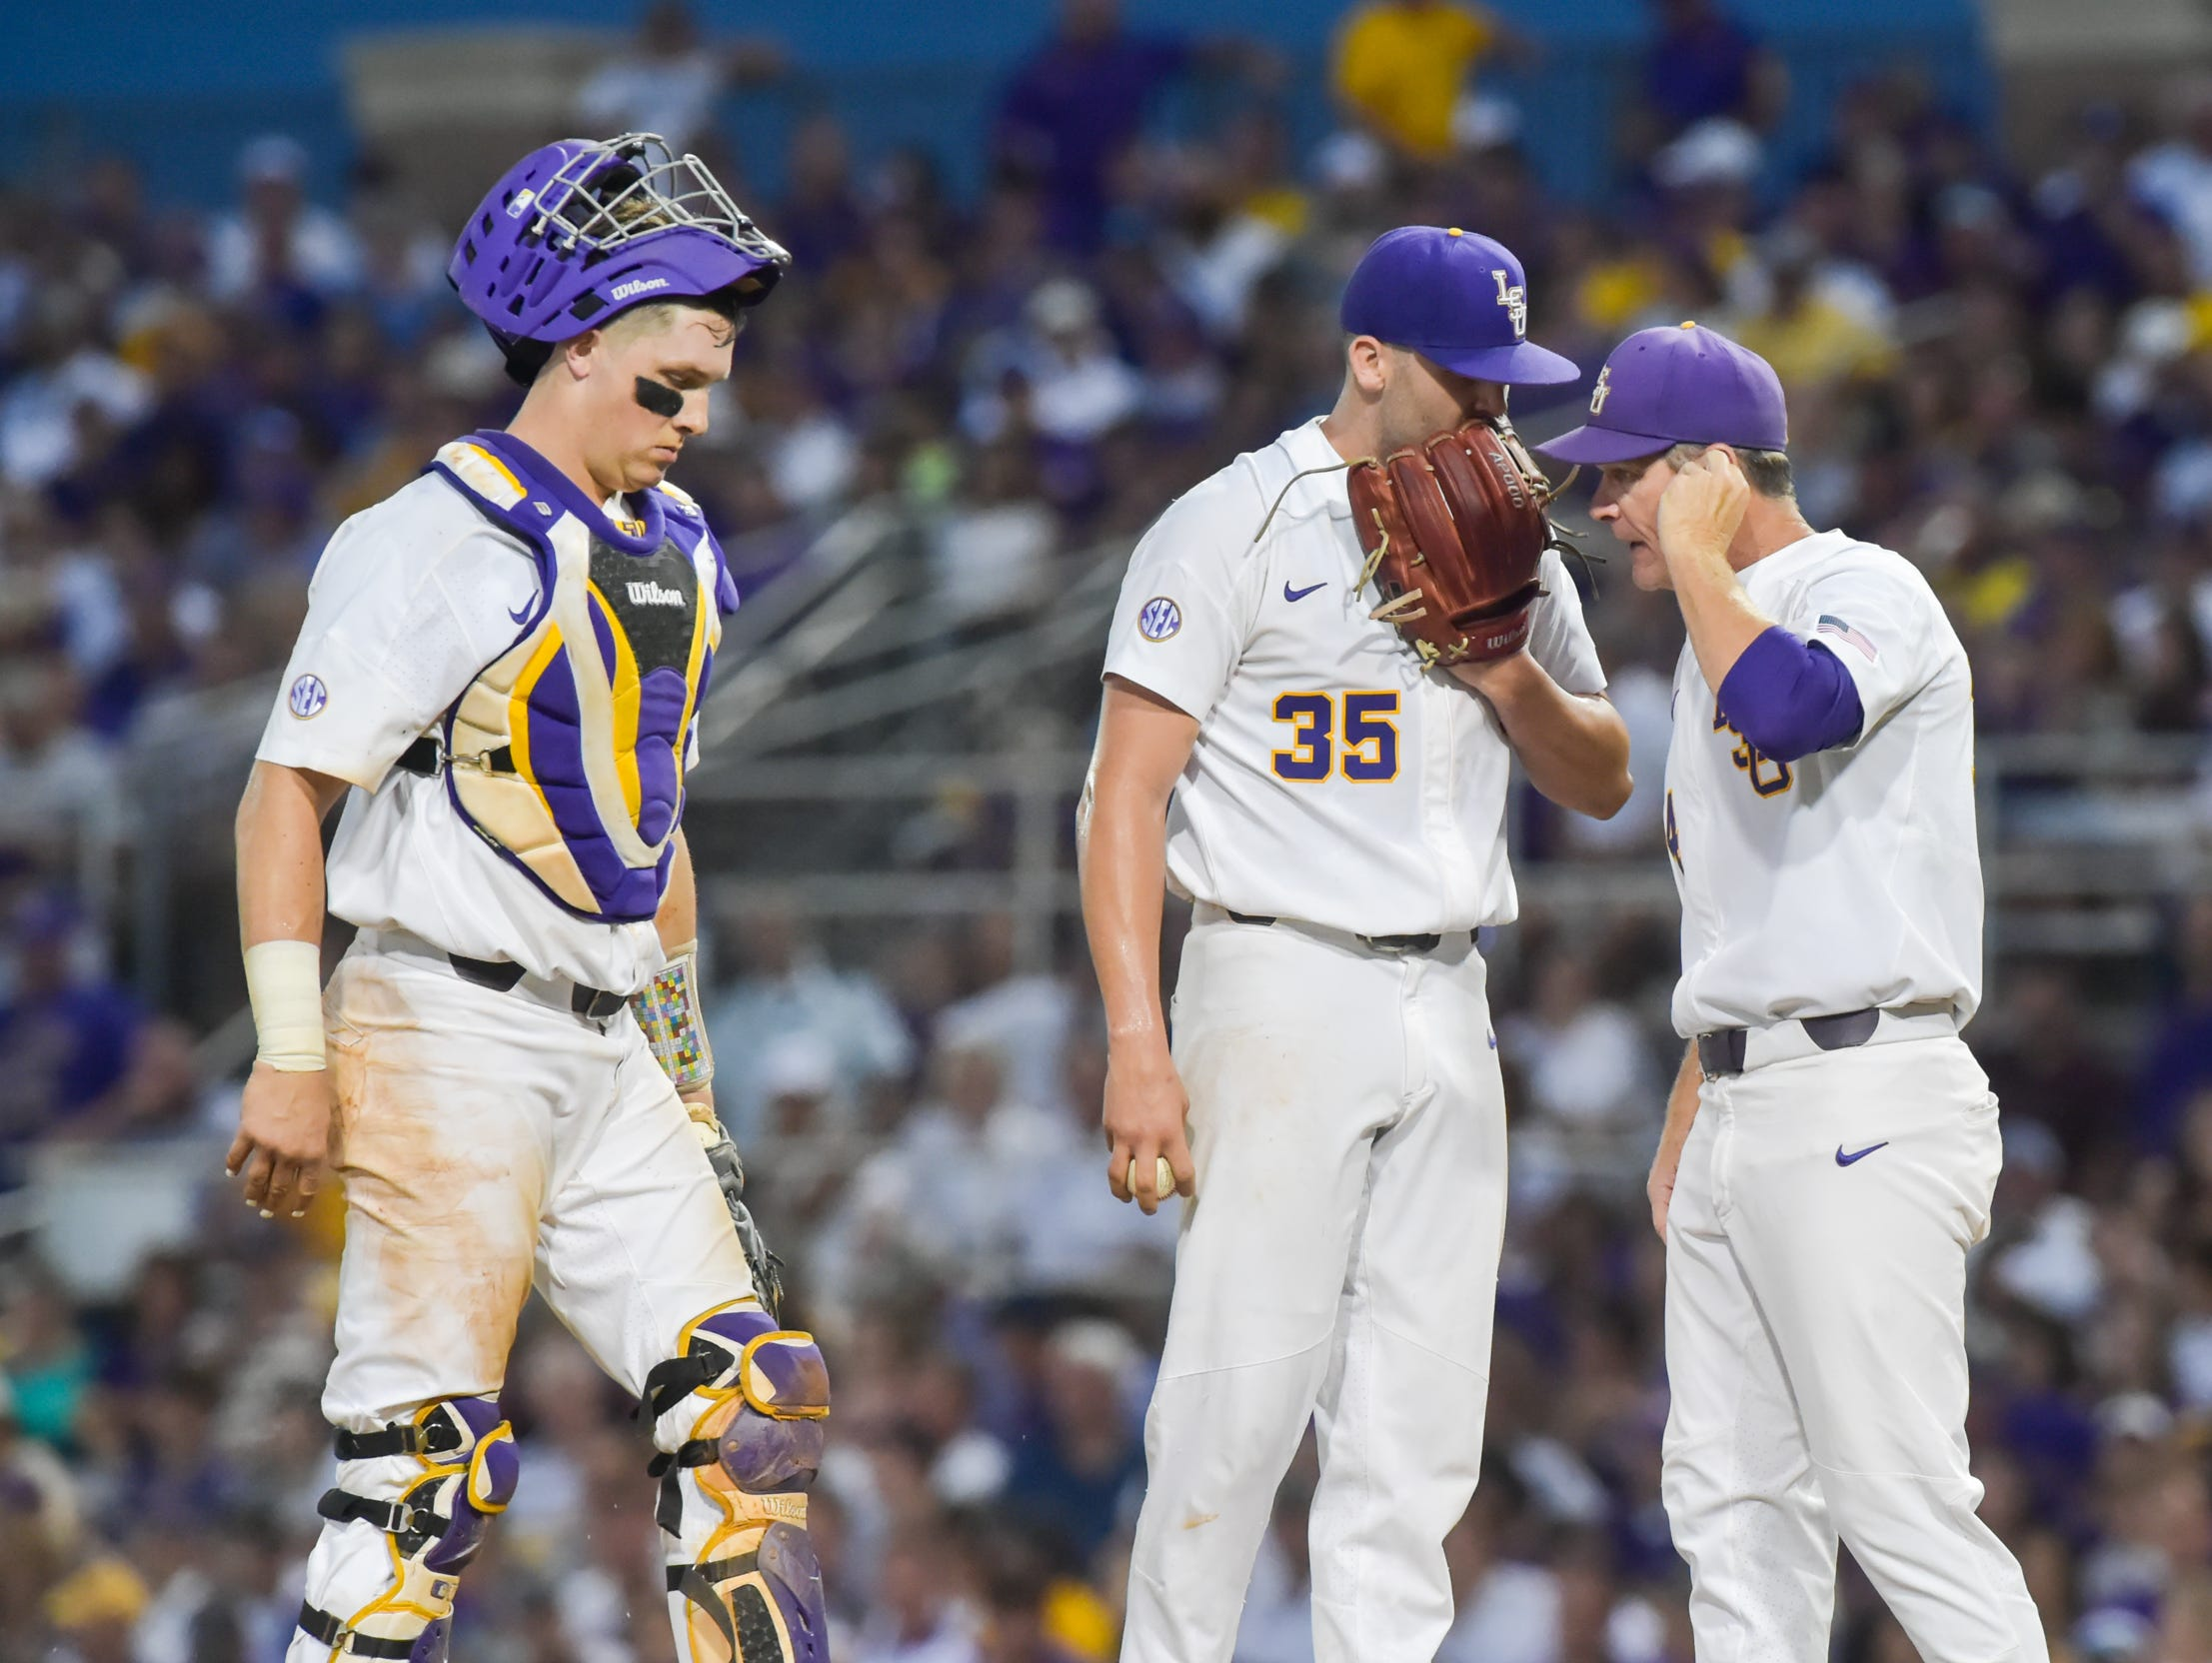 Pitching coach Alan Dunn meets with Alex Lange during the first inning as Mississippi State takes on LSU in the NCAA Super Regional at Alex Box Stadium in Baton Rouge Saturday, June 10, 2017.